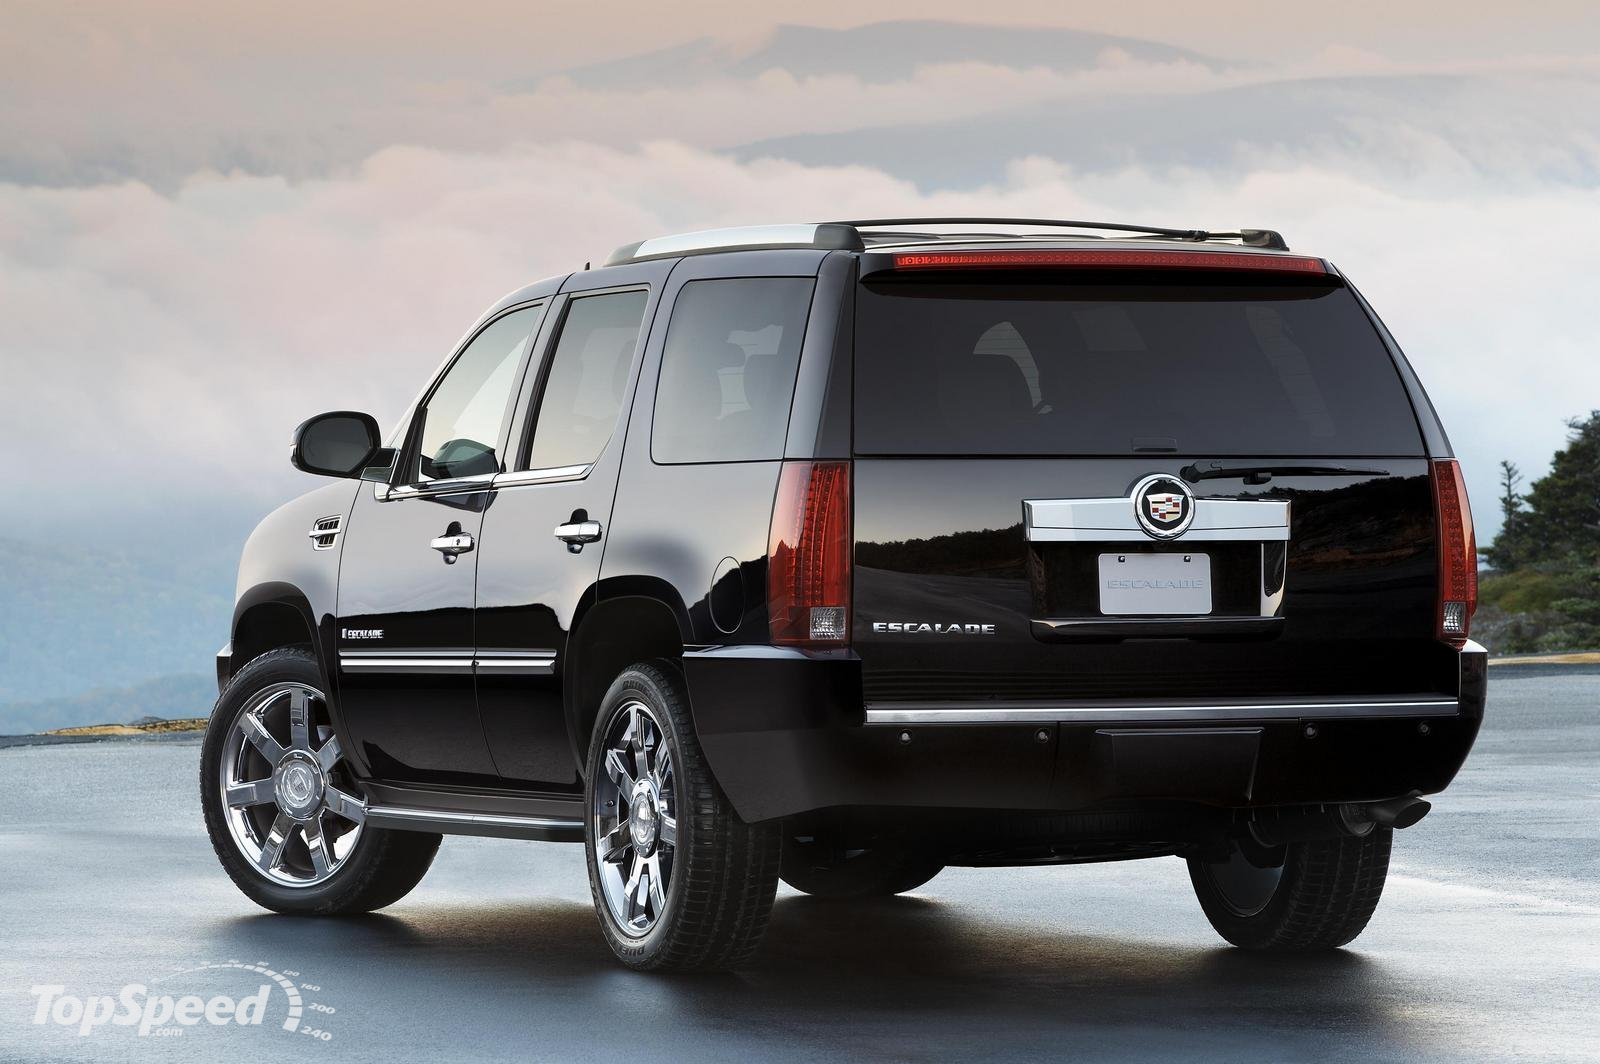 2009 Cadillac Escalade 1 1600x0w Muscle Cars Zone